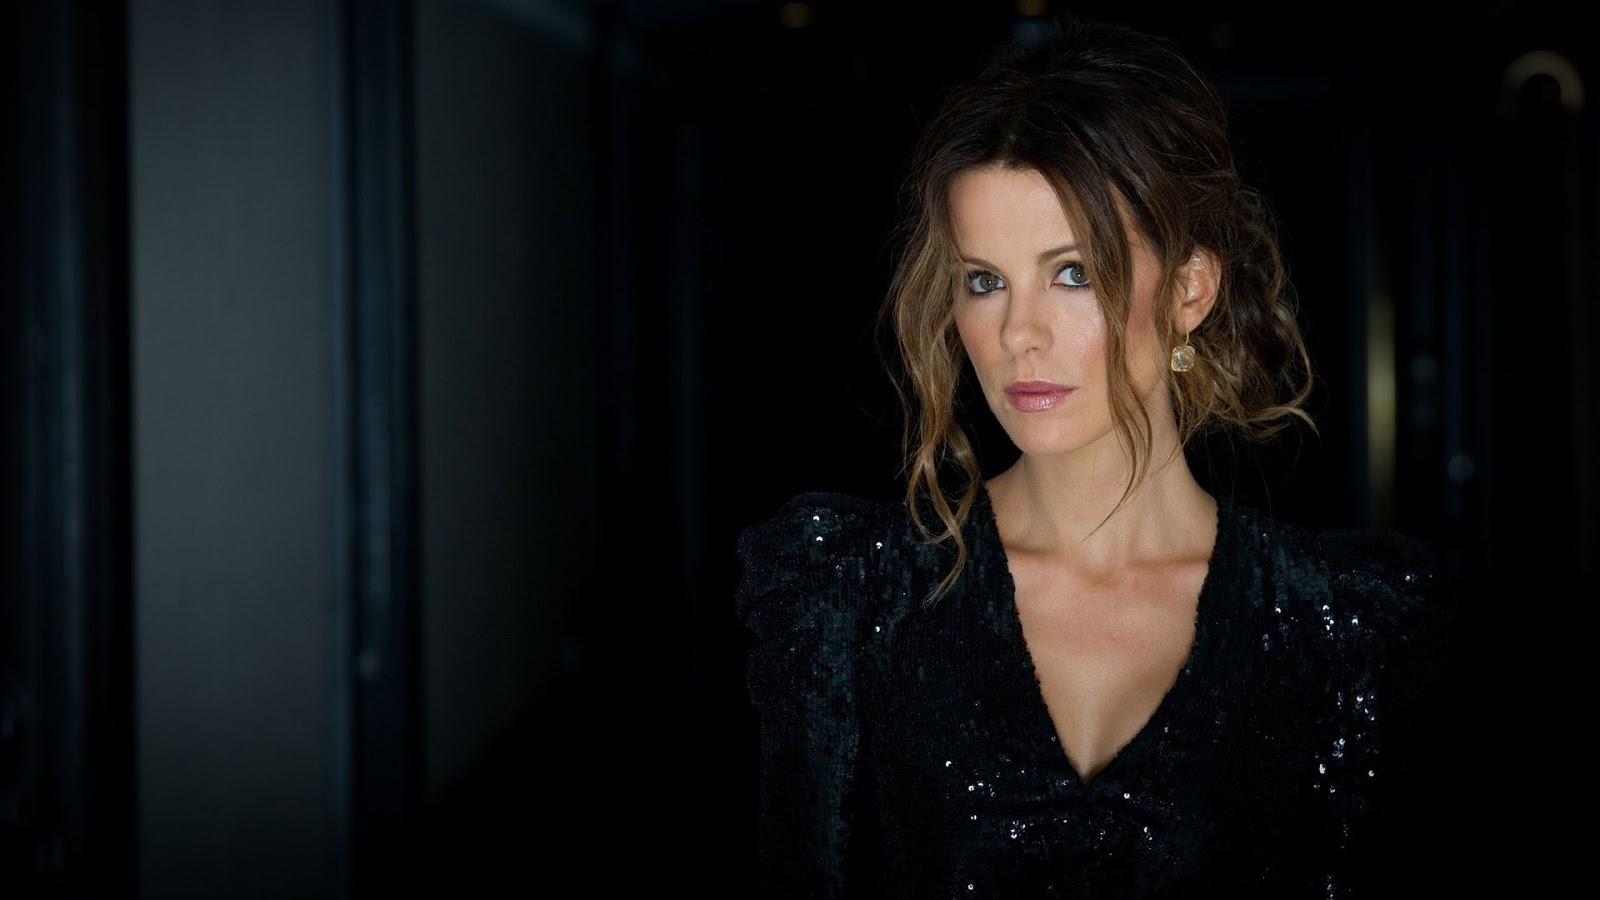 kate beckinsale hd wallpapers pictures and background images